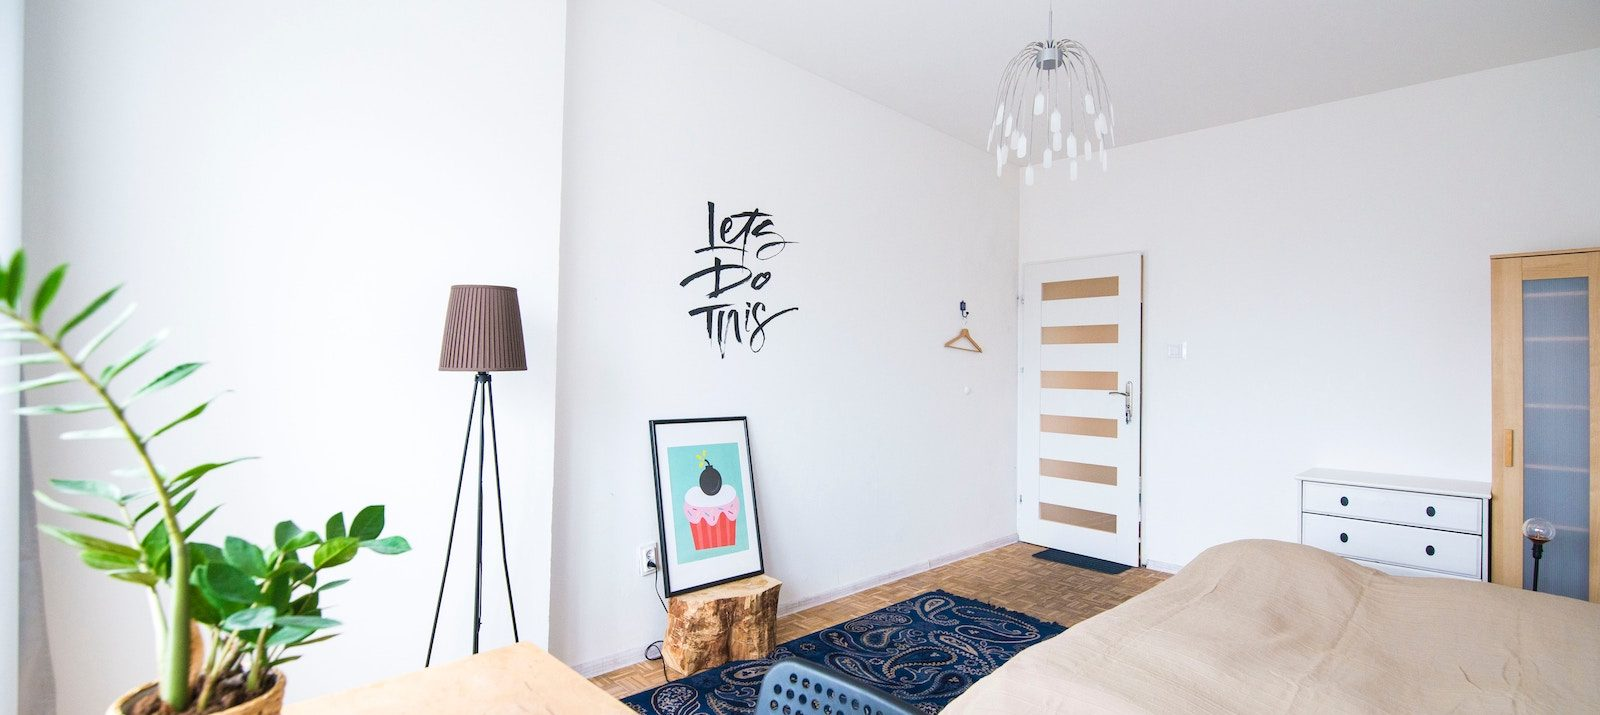 15 Genius Space-Saving Furniture Ideas & Designs For Small Apartments